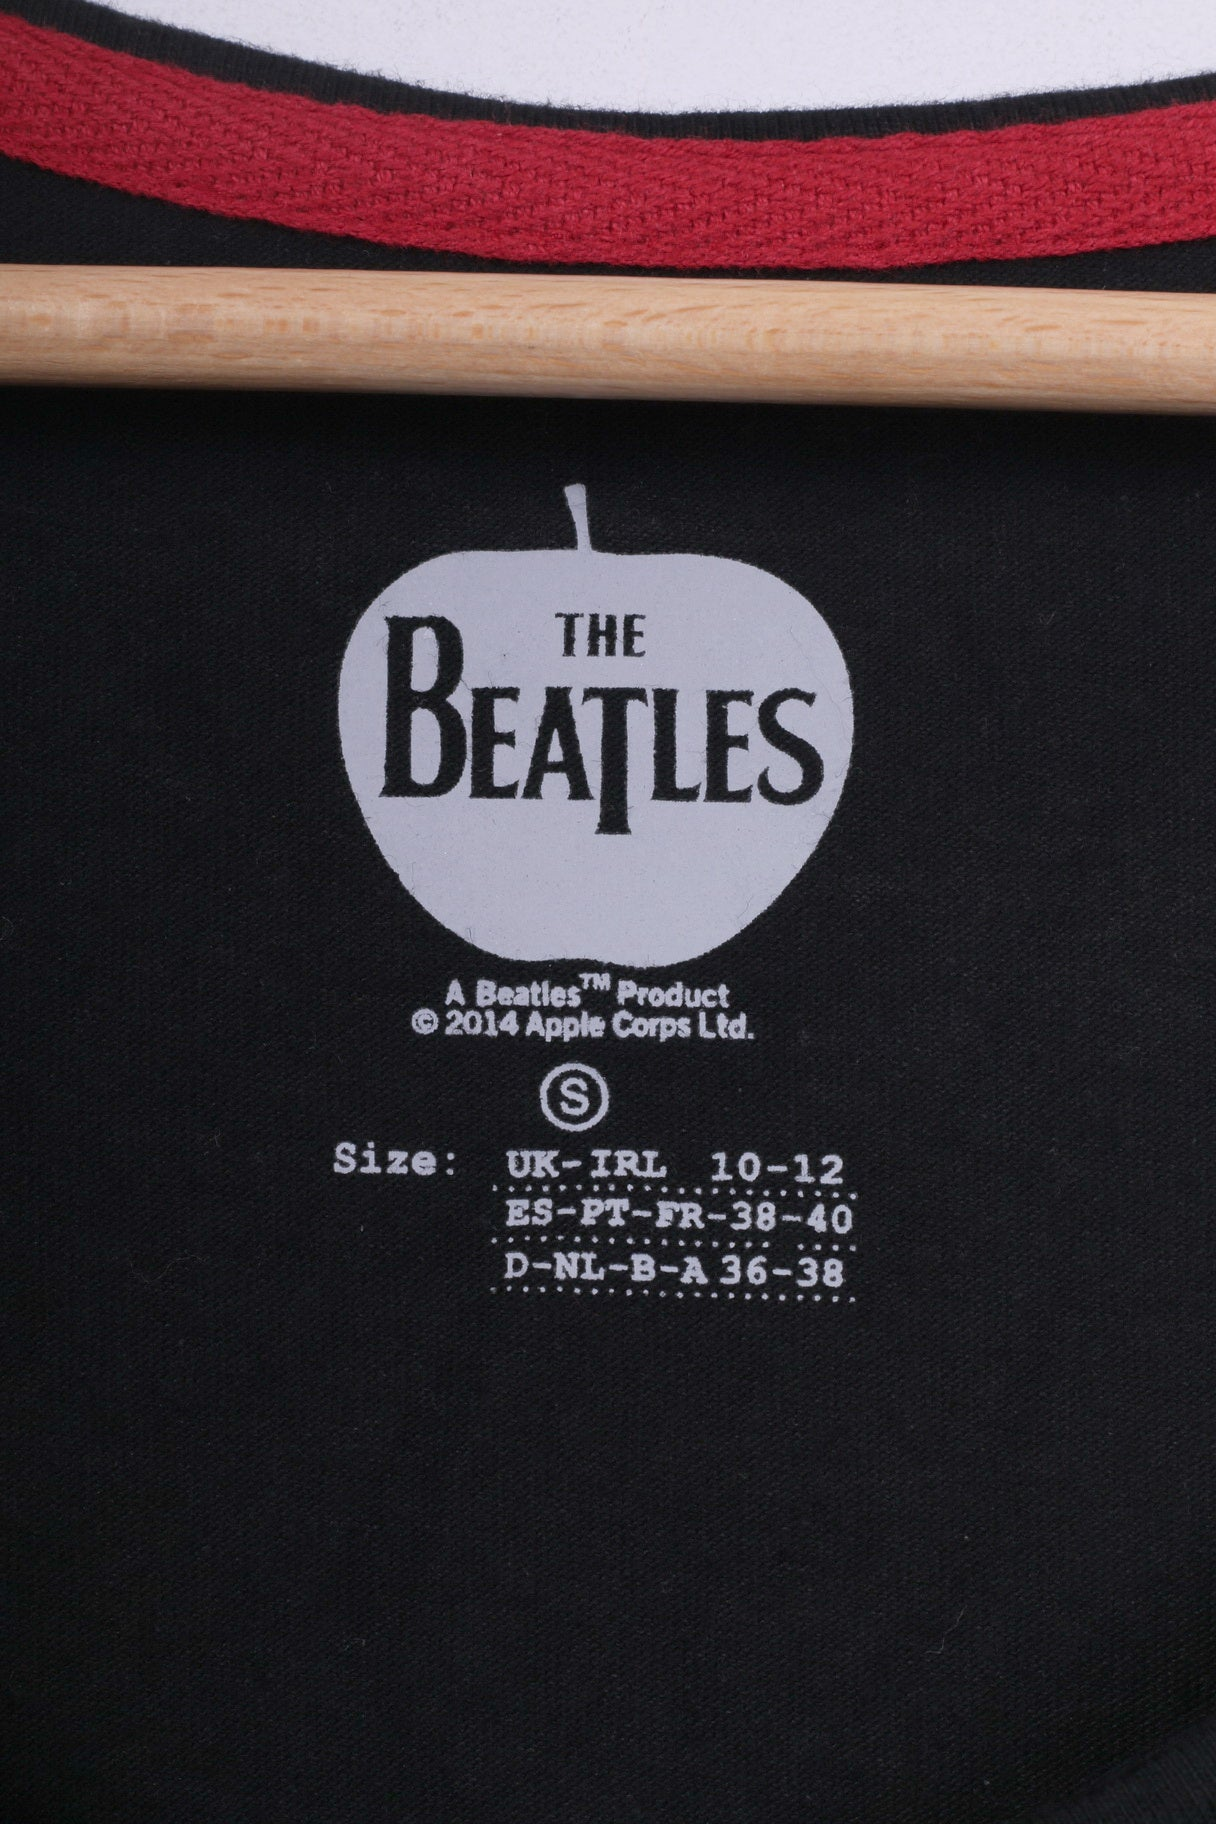 775ed29ee20020 ... Primark The Beatles Womens 10 12 M Shirt Tank Top Graphic Cotton Black  A Hard ...